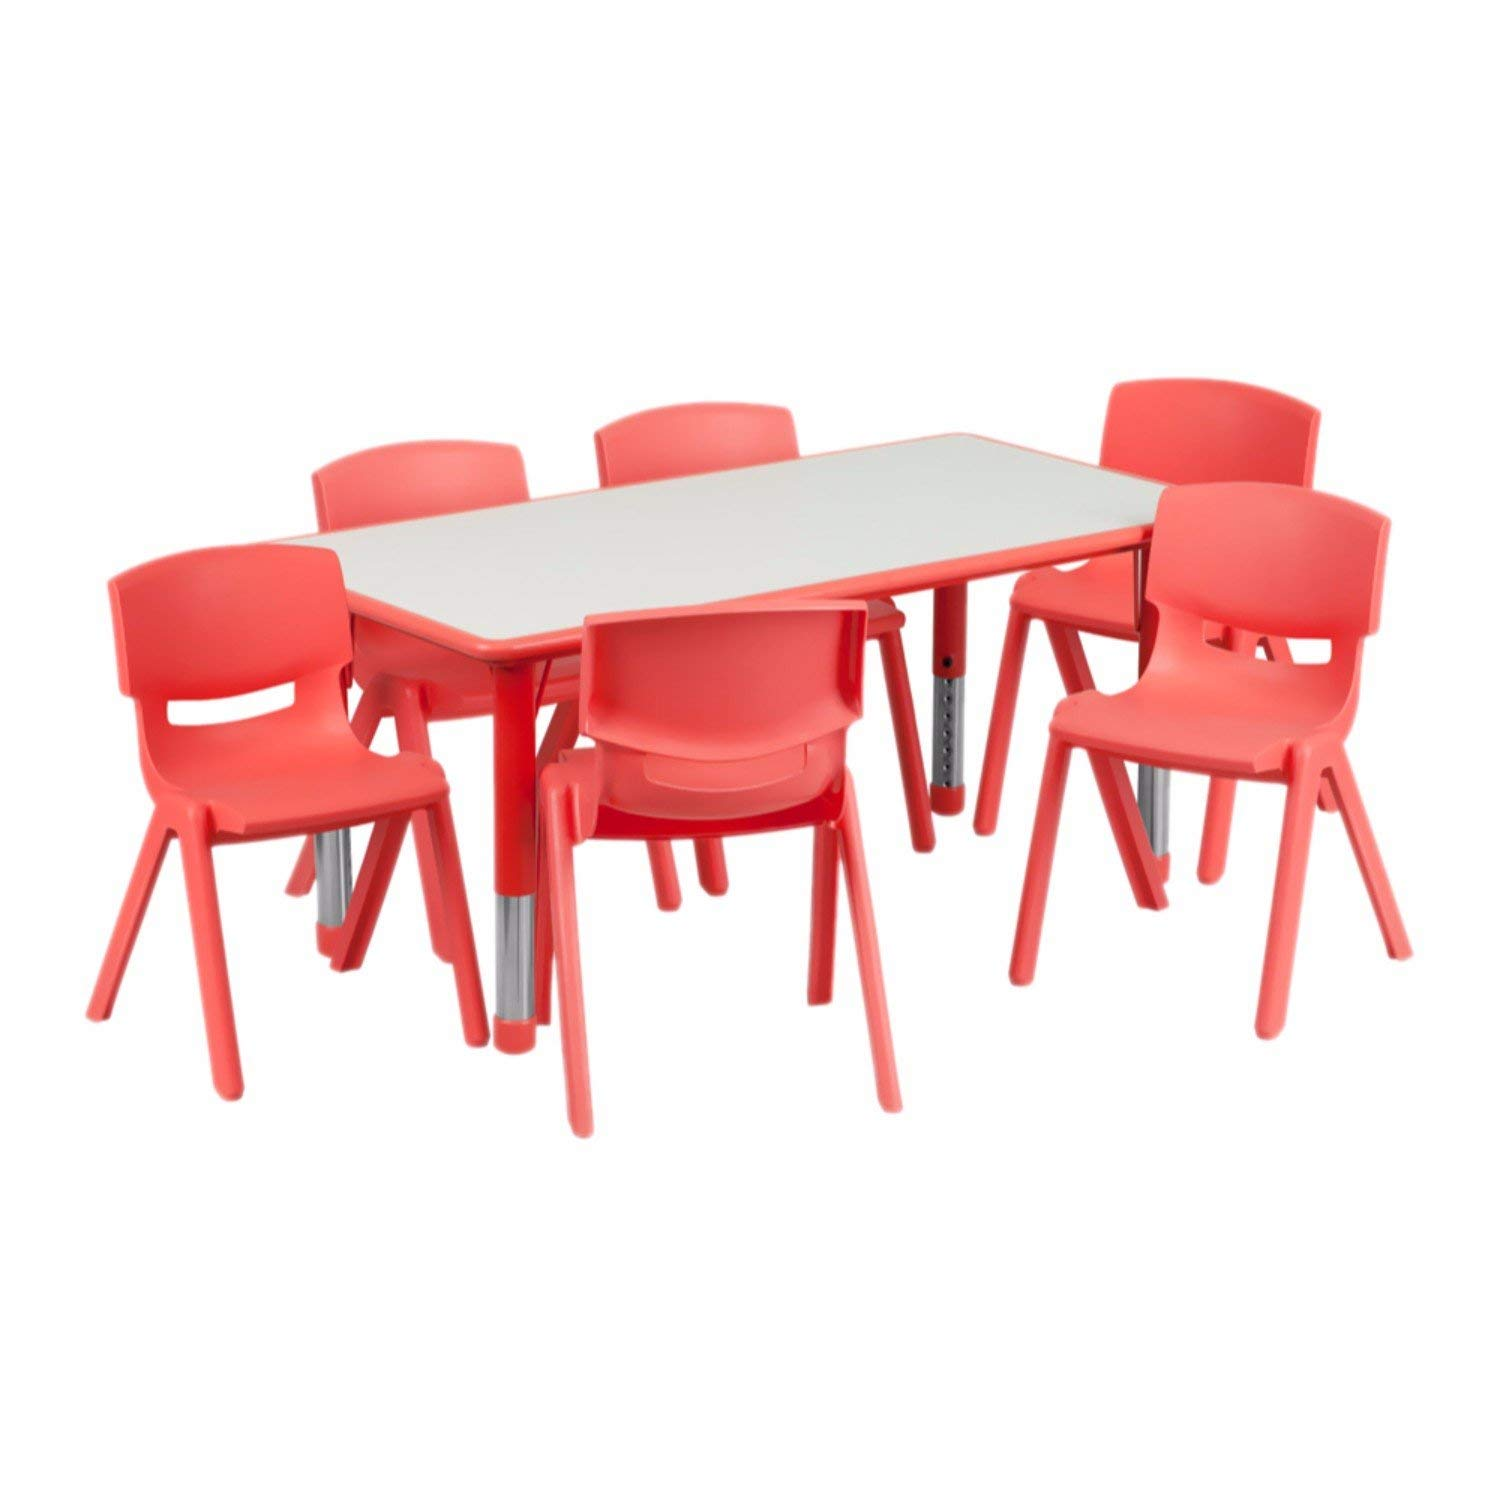 Offex 23.625''W x 47.25''L Rectangular Plastic Height Adjustable Activity Table Set with 6 Chairs - Red